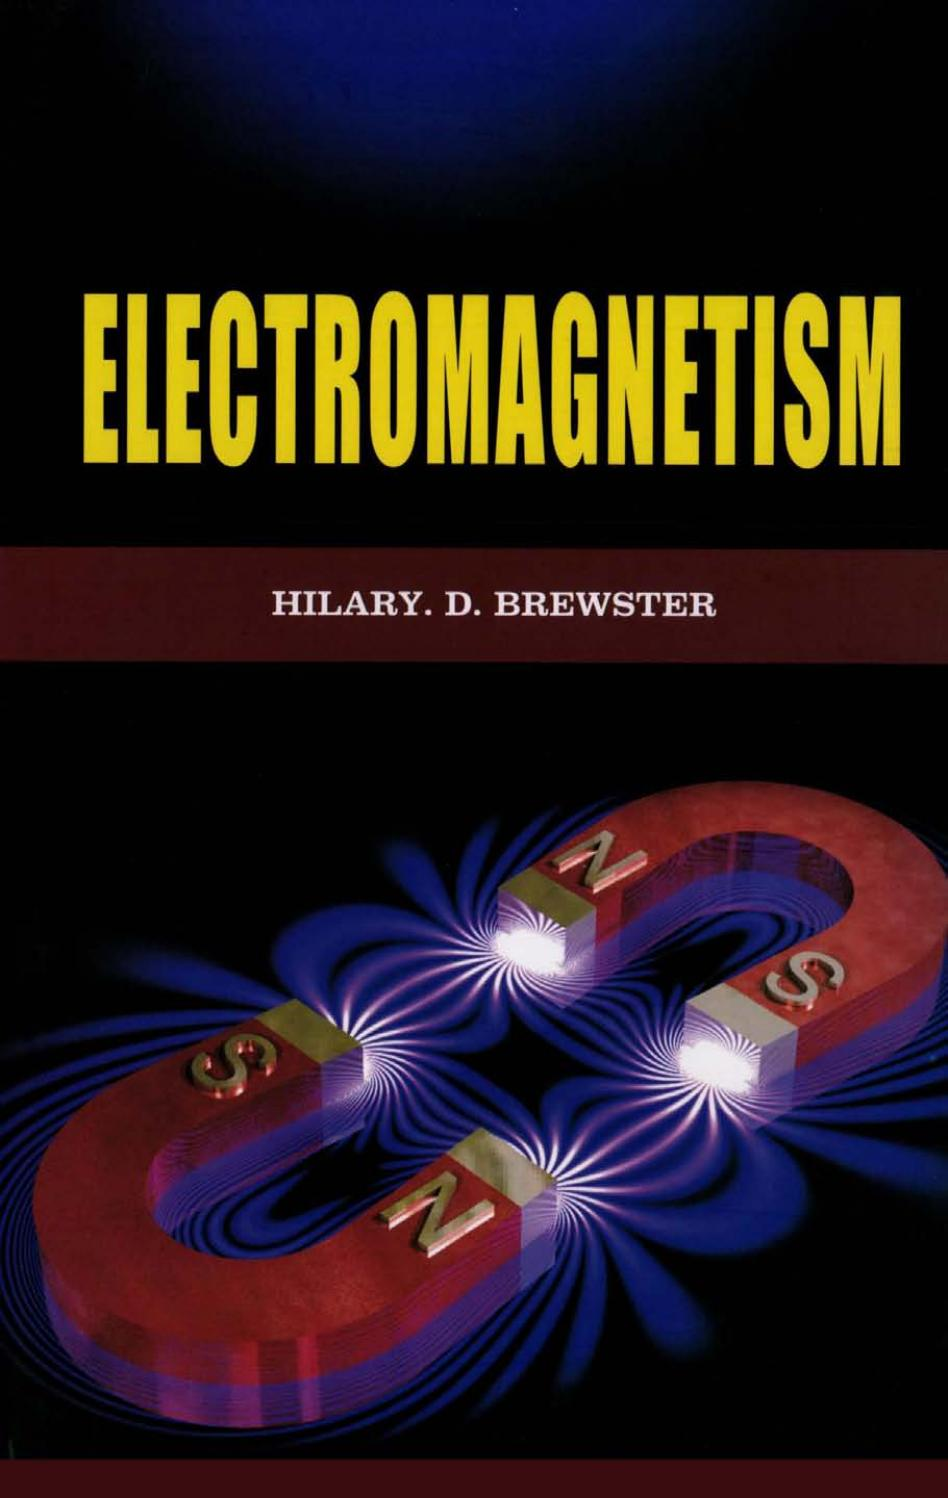 Charging Ahead: An Introduction to Electromagnetism